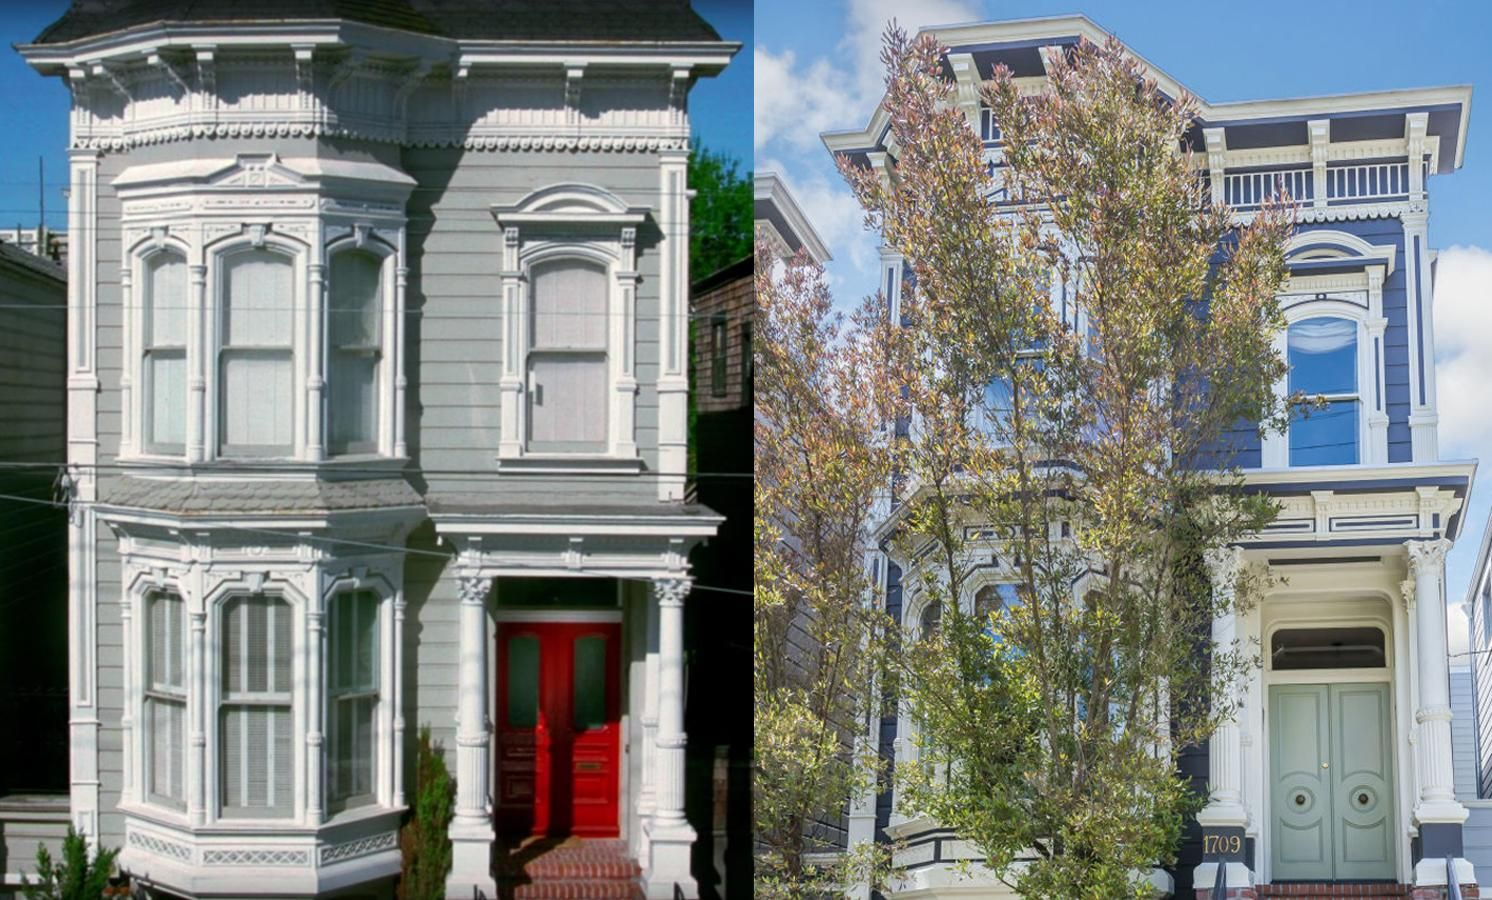 Marvelous Full House Home Broderick Street San Francisco Exterior Housea Revival May  The Works Variety · The LifestyleHouse PricesBig ...